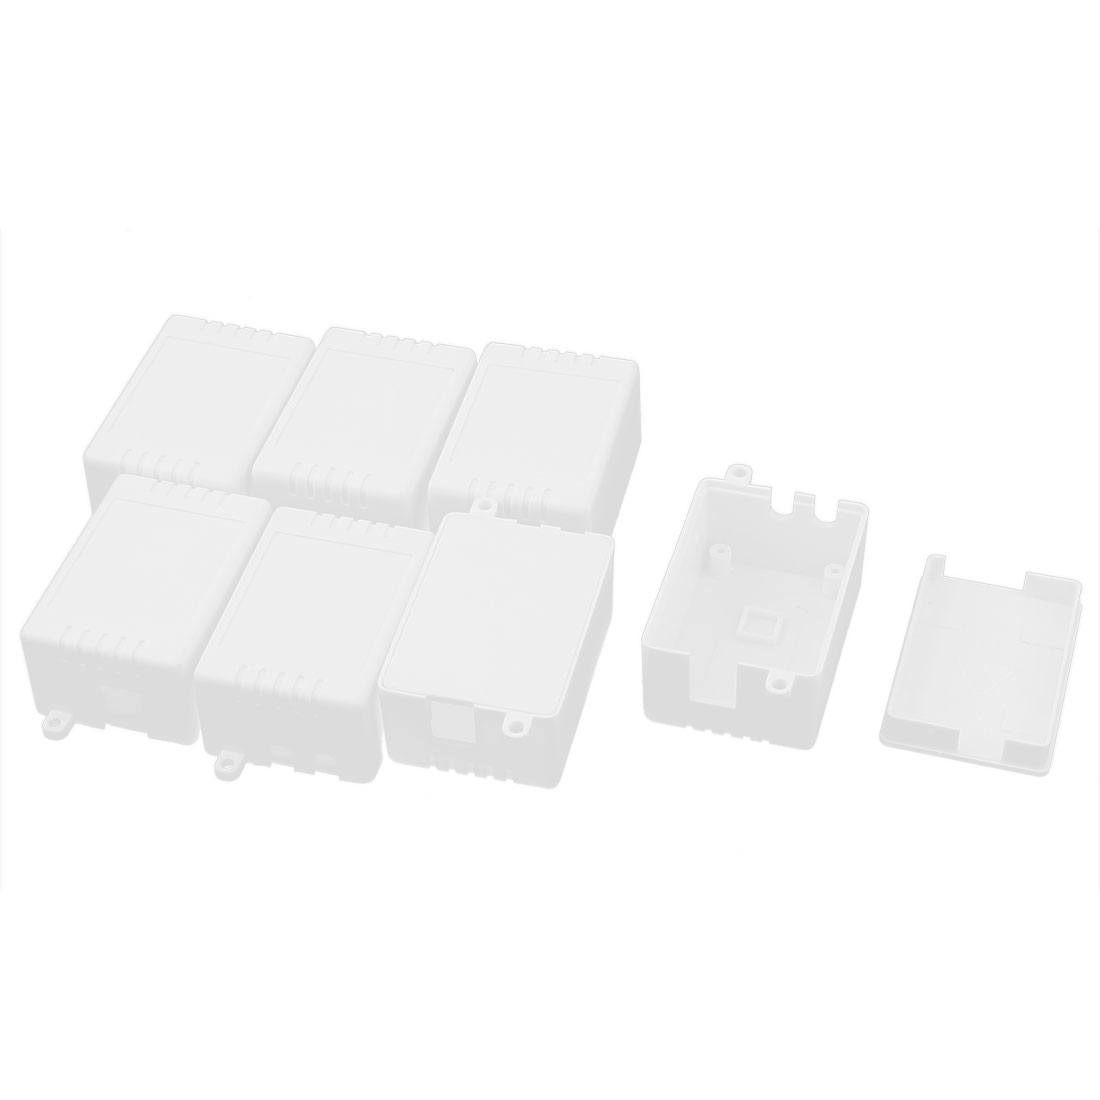 7pcs Dustproof IP65 Cable Entries Gang Junction Box White